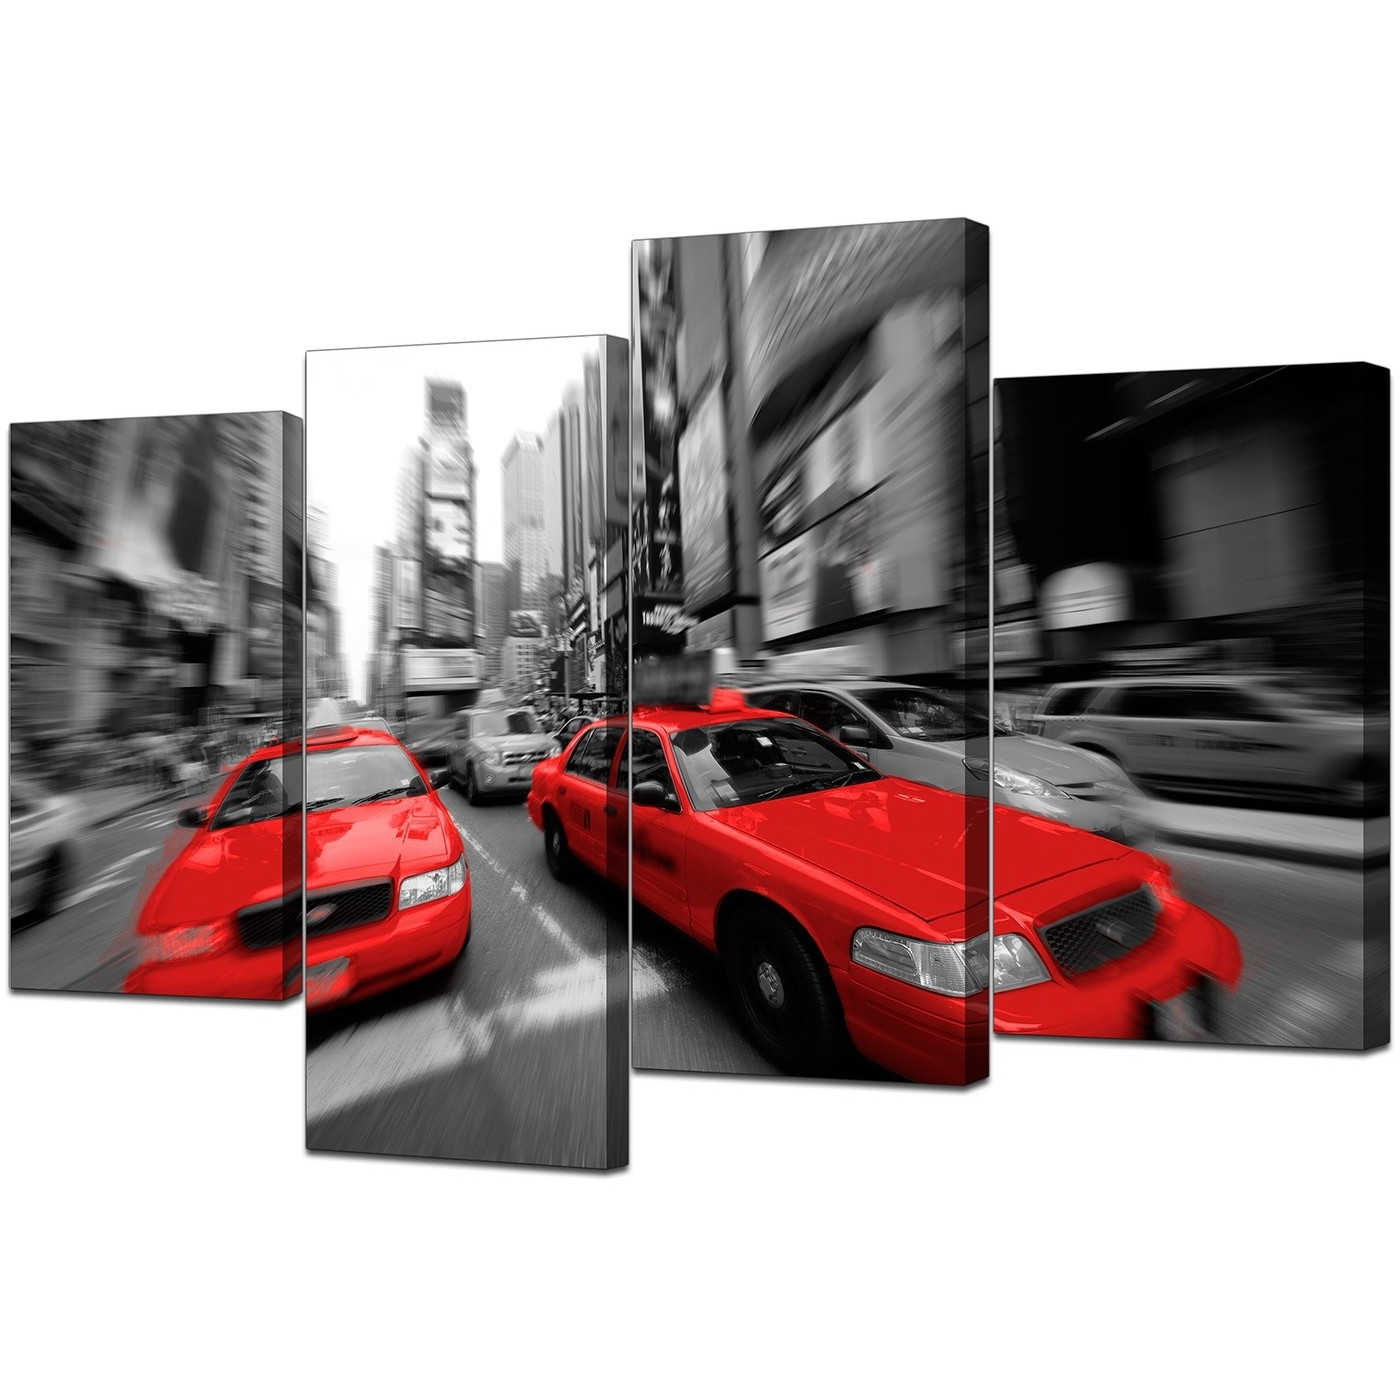 Most Recent New York Canvas Prints In Black White & Red – For Living Room Throughout Black And White New York Canvas Wall Art (View 11 of 15)